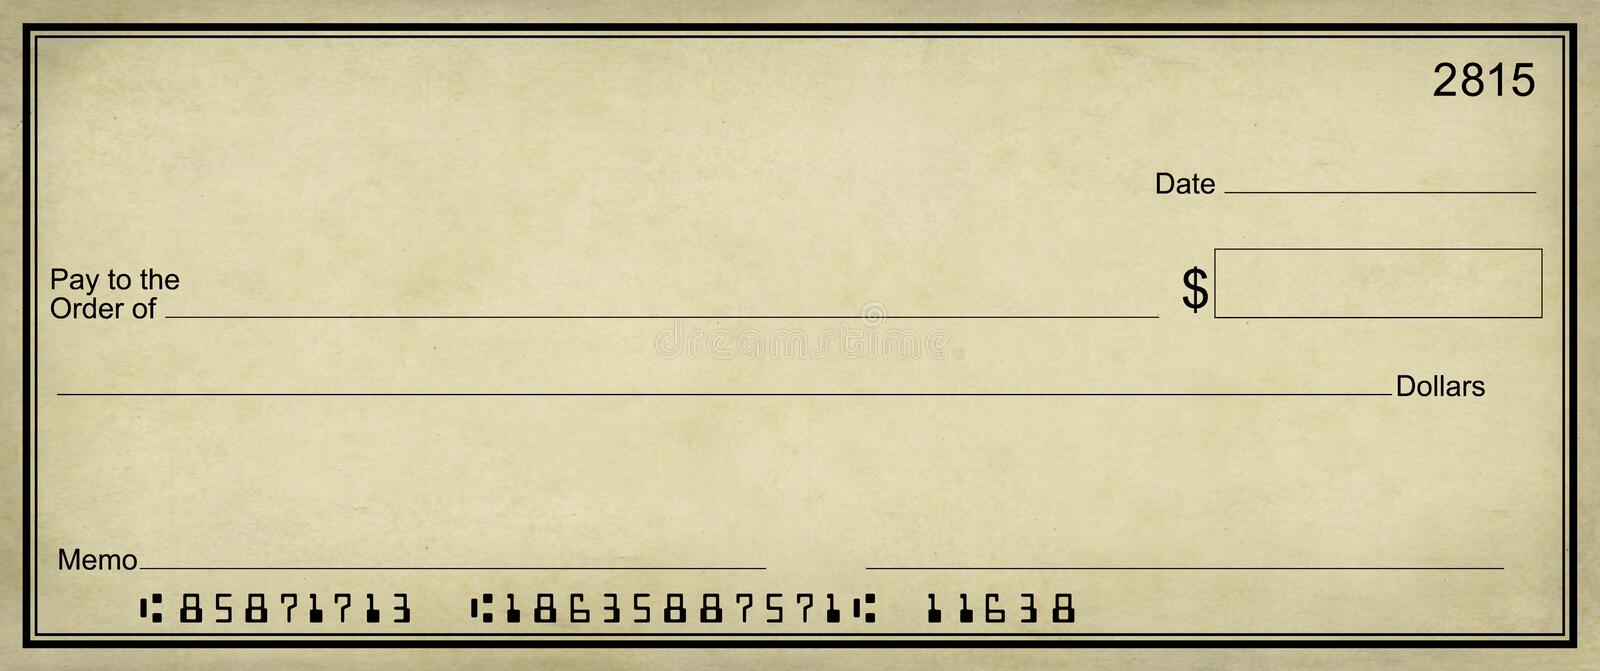 Blank check parchment background. Use background for a sweepstakes or charity event give-away